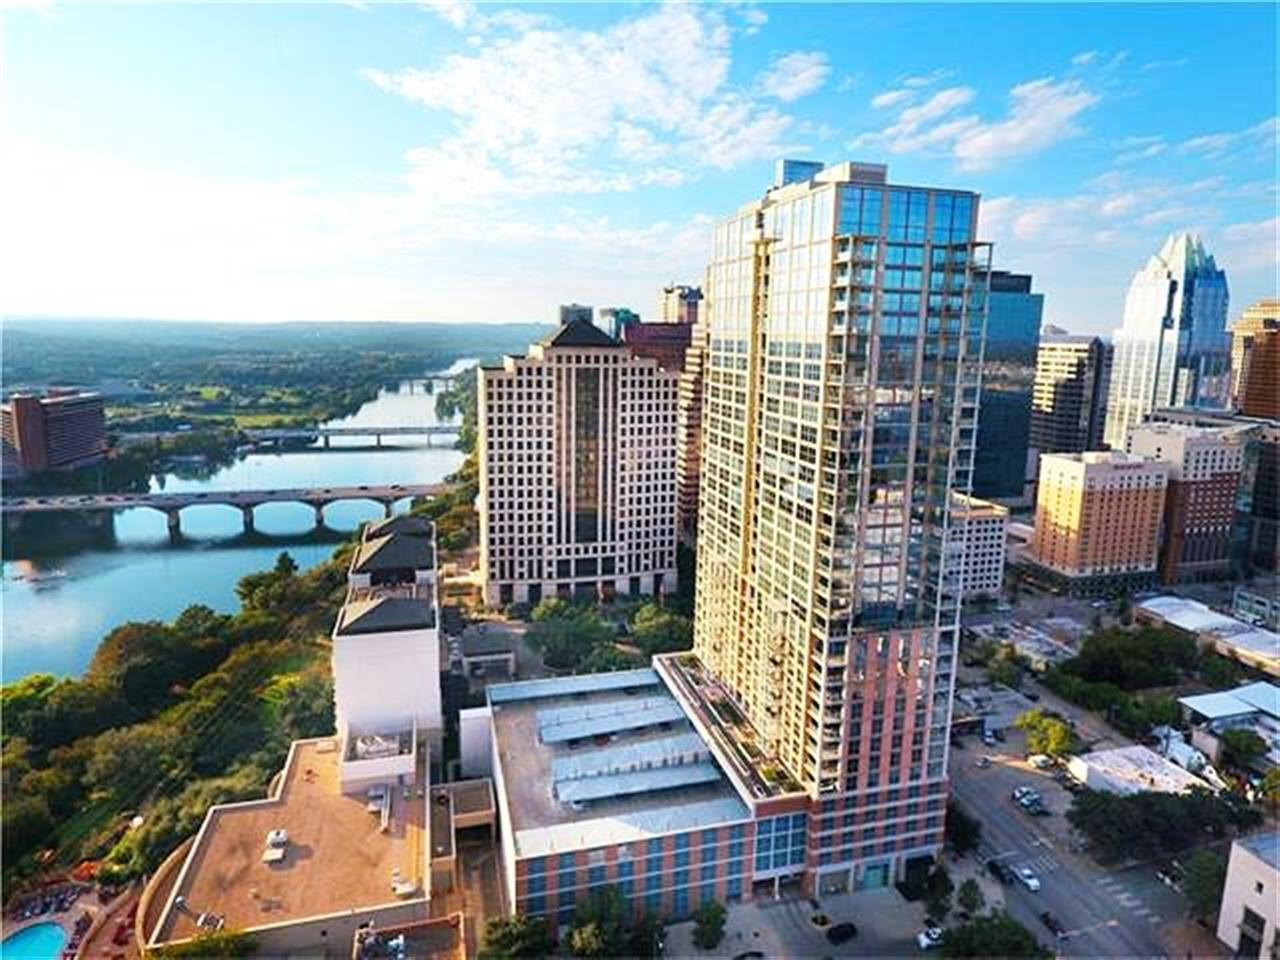 It's truly a perfect day in Austin, TX! Blue sky, warm weather, the sun is shining and the Four Seasons building downtown looks great! Inside we have a 1bd | 1.5ba unit now available and listed for $960k. 98 San Jacinto Blvd Unit #702 Listed By Anna Lee | Realtor | 512.968.6419 | anna@moreland.com #Austin #downtown #condo #forsale #luxuryrealestate #FourSeasons #MorelandProperties #townlake #ATXrealestate #leadingRE #downtowncondo #views #sunny